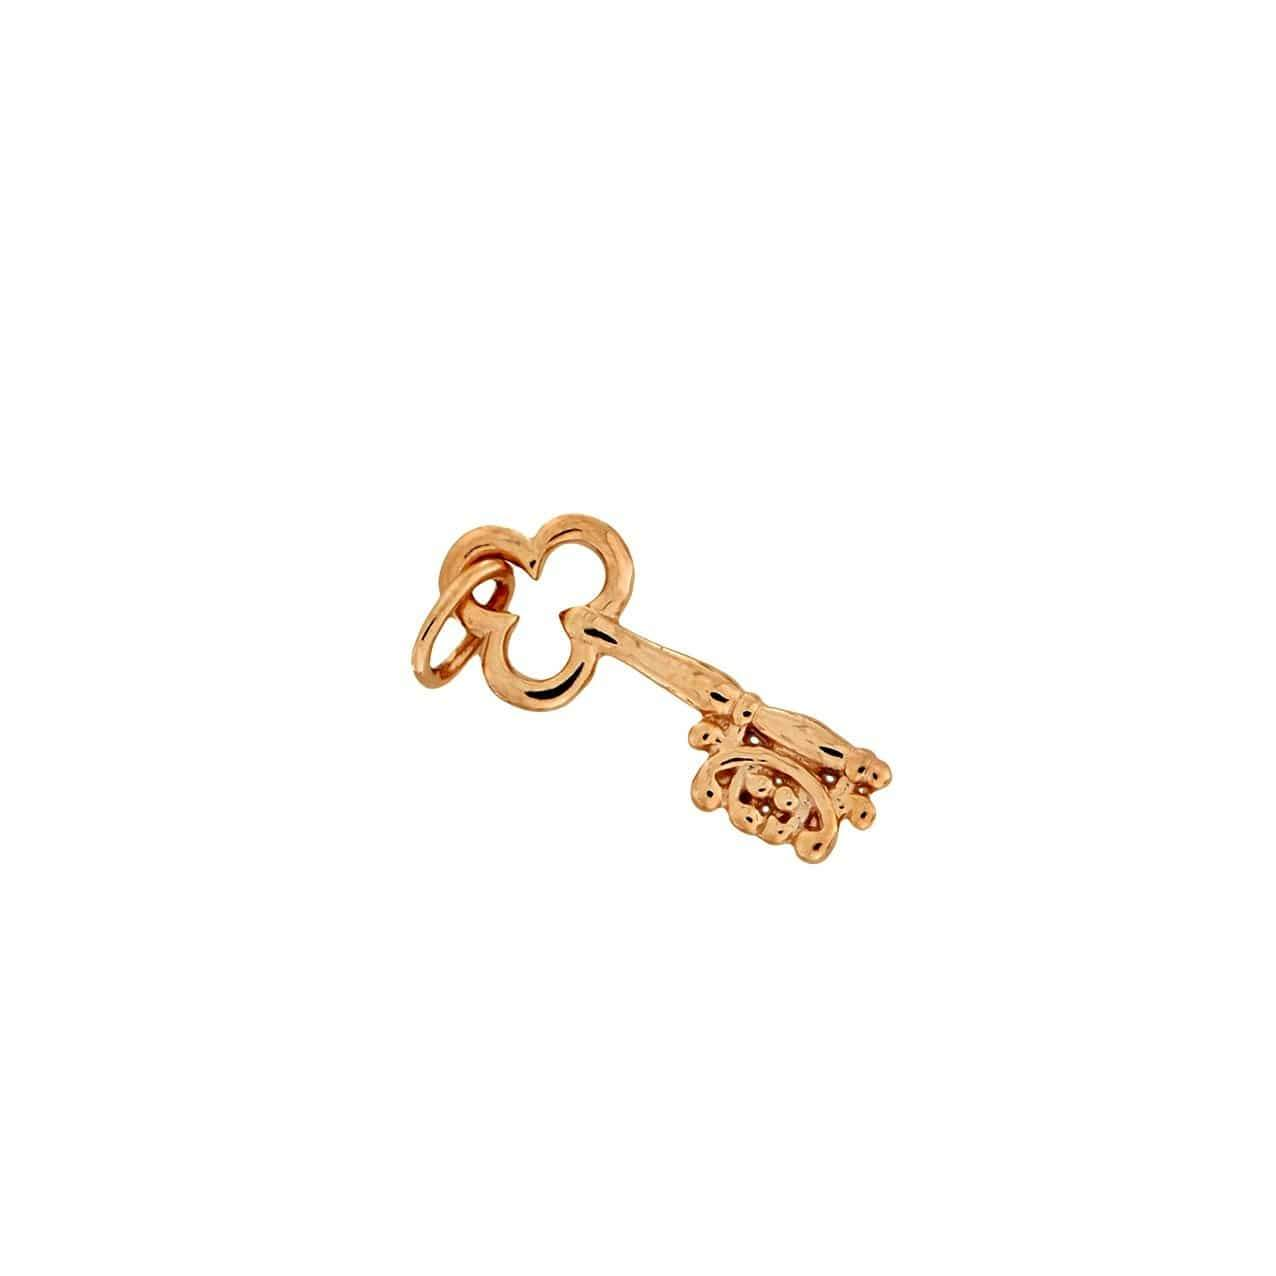 Rose Vermeil Key Charm